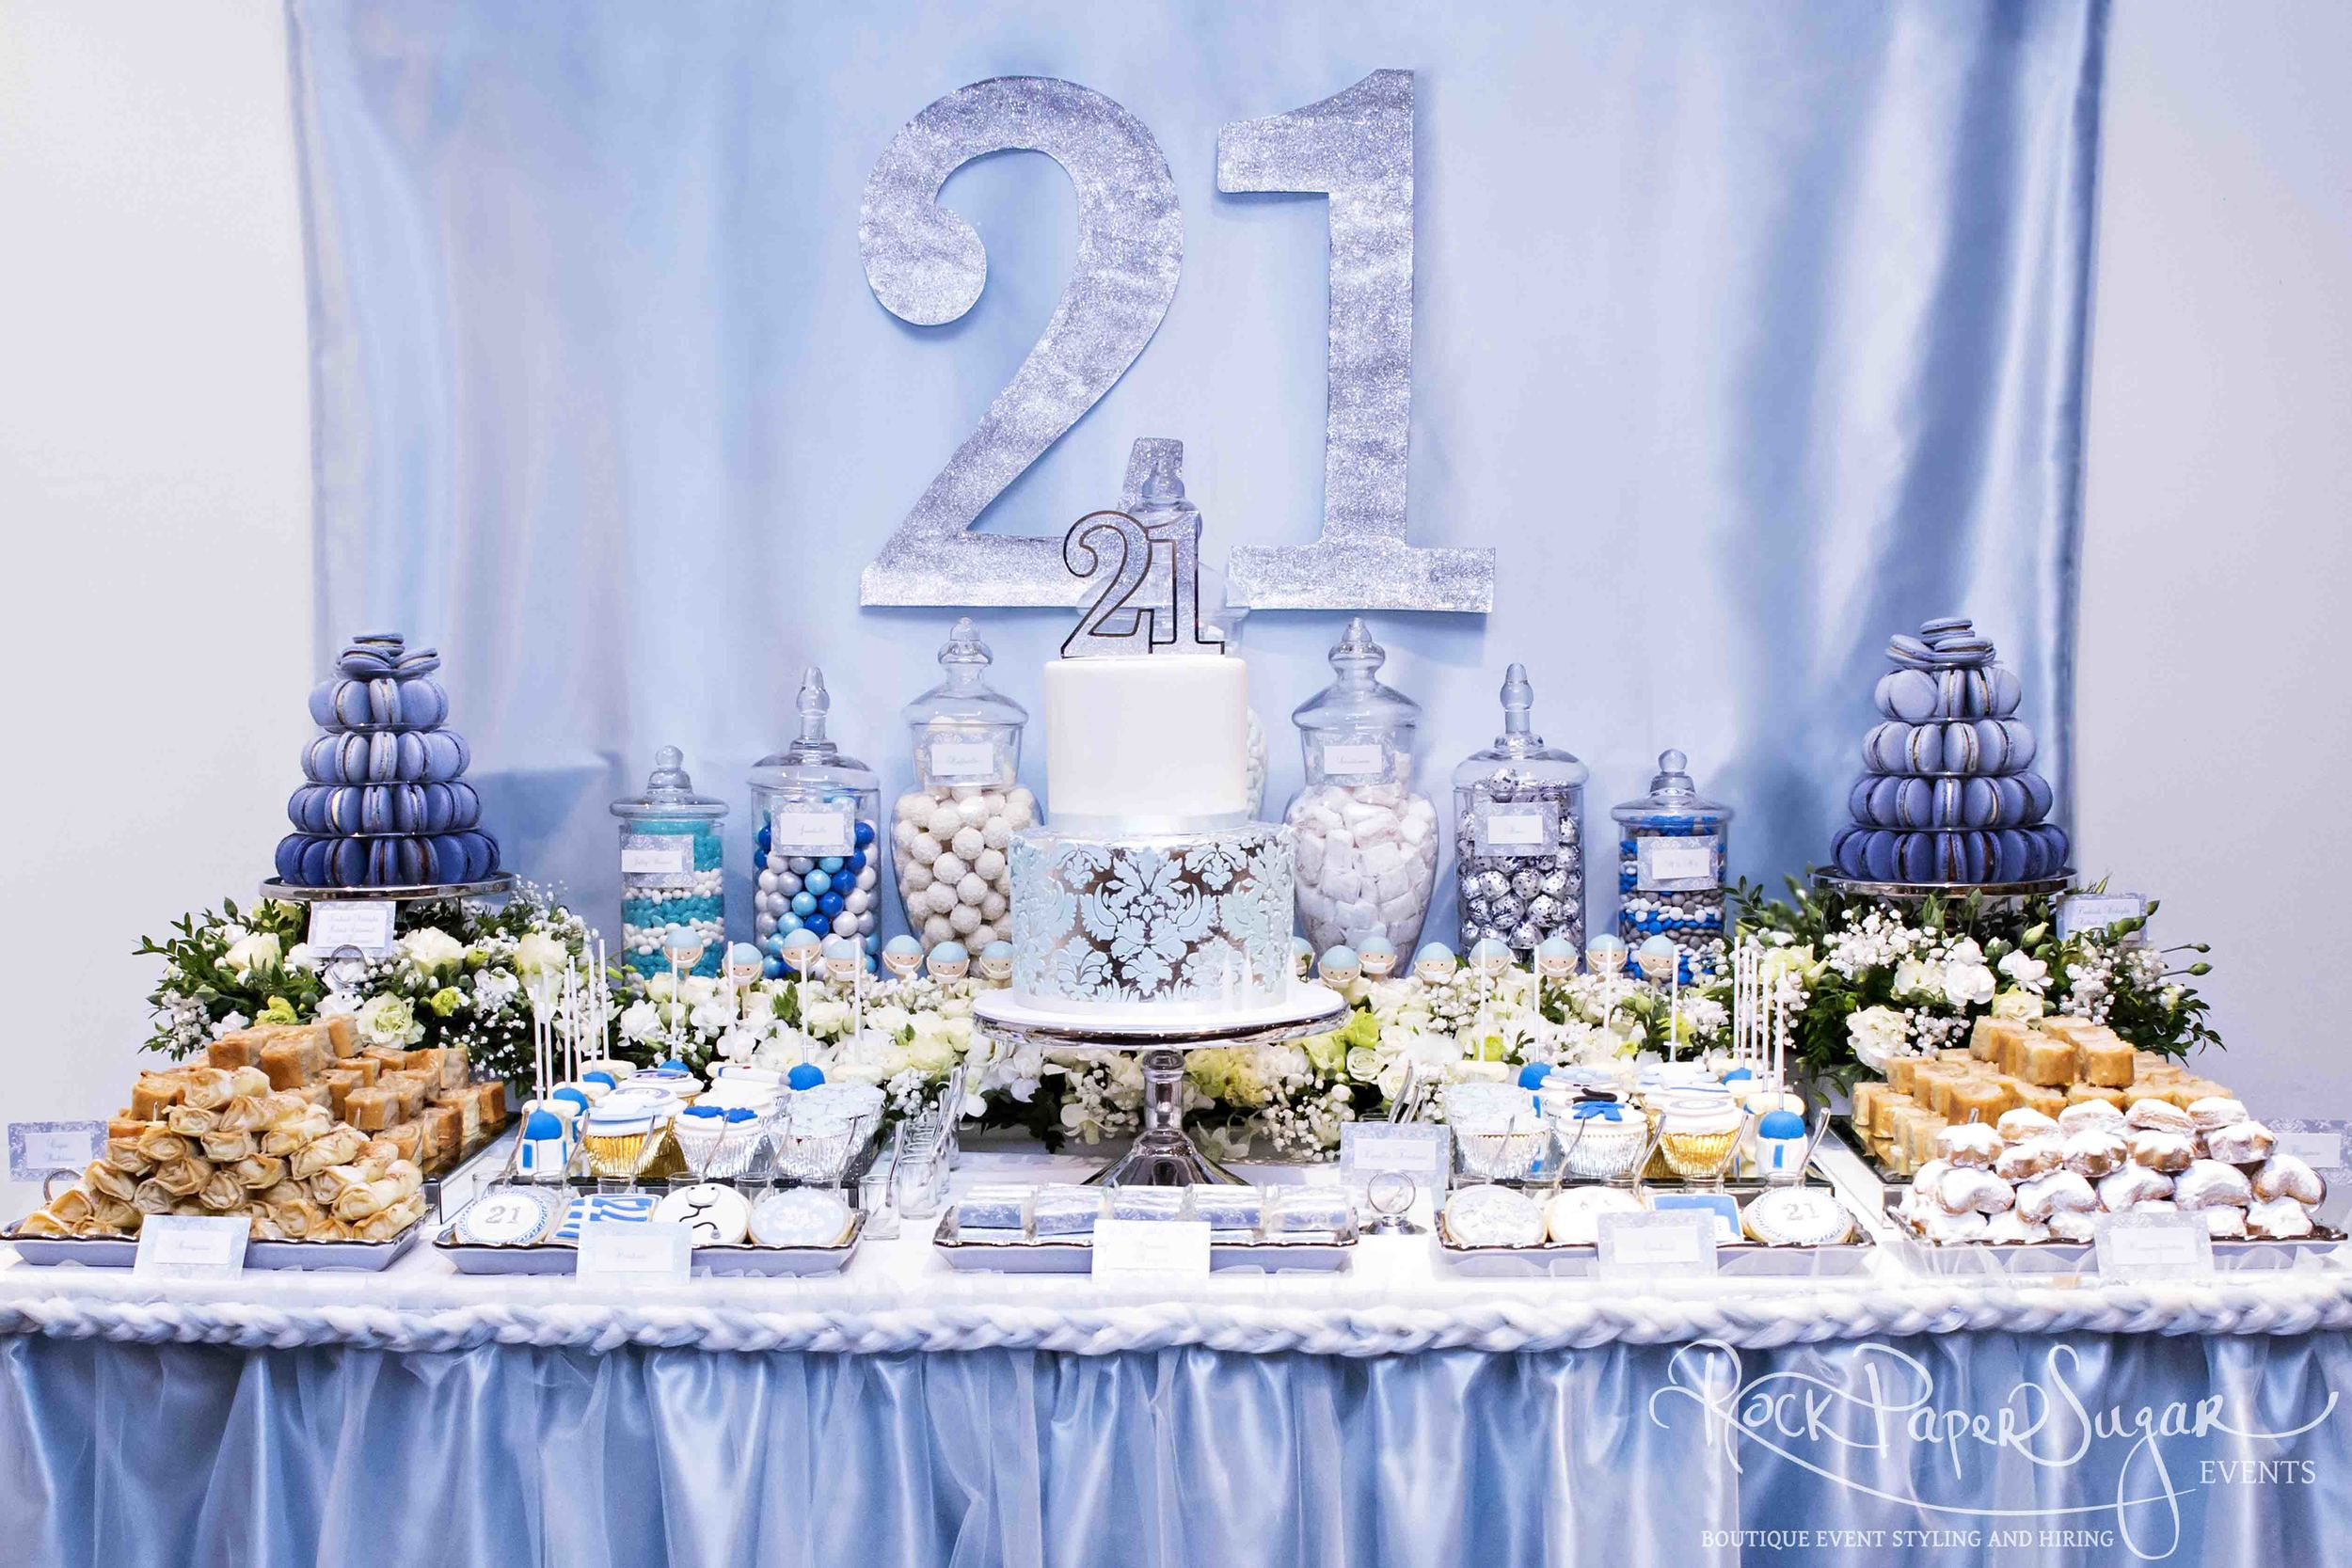 21st Birthday ~ Dessert Table, Floral Arrangements, Room Set up,Invitations         Hi Kathleen! I just wanted to say a massive thank you for all your hard work with the dessert table, invites and decorations - it looked absolutely STUNNING!  No one could take their eyes off it! The little cupcakes and cakepops were fantastic, and everyone loved the Greek desserts! The cake was a real standout, it was delicious! Thanks again for everything Kathleen! I couldn't have done it without you!   💕💕💕    Vicki